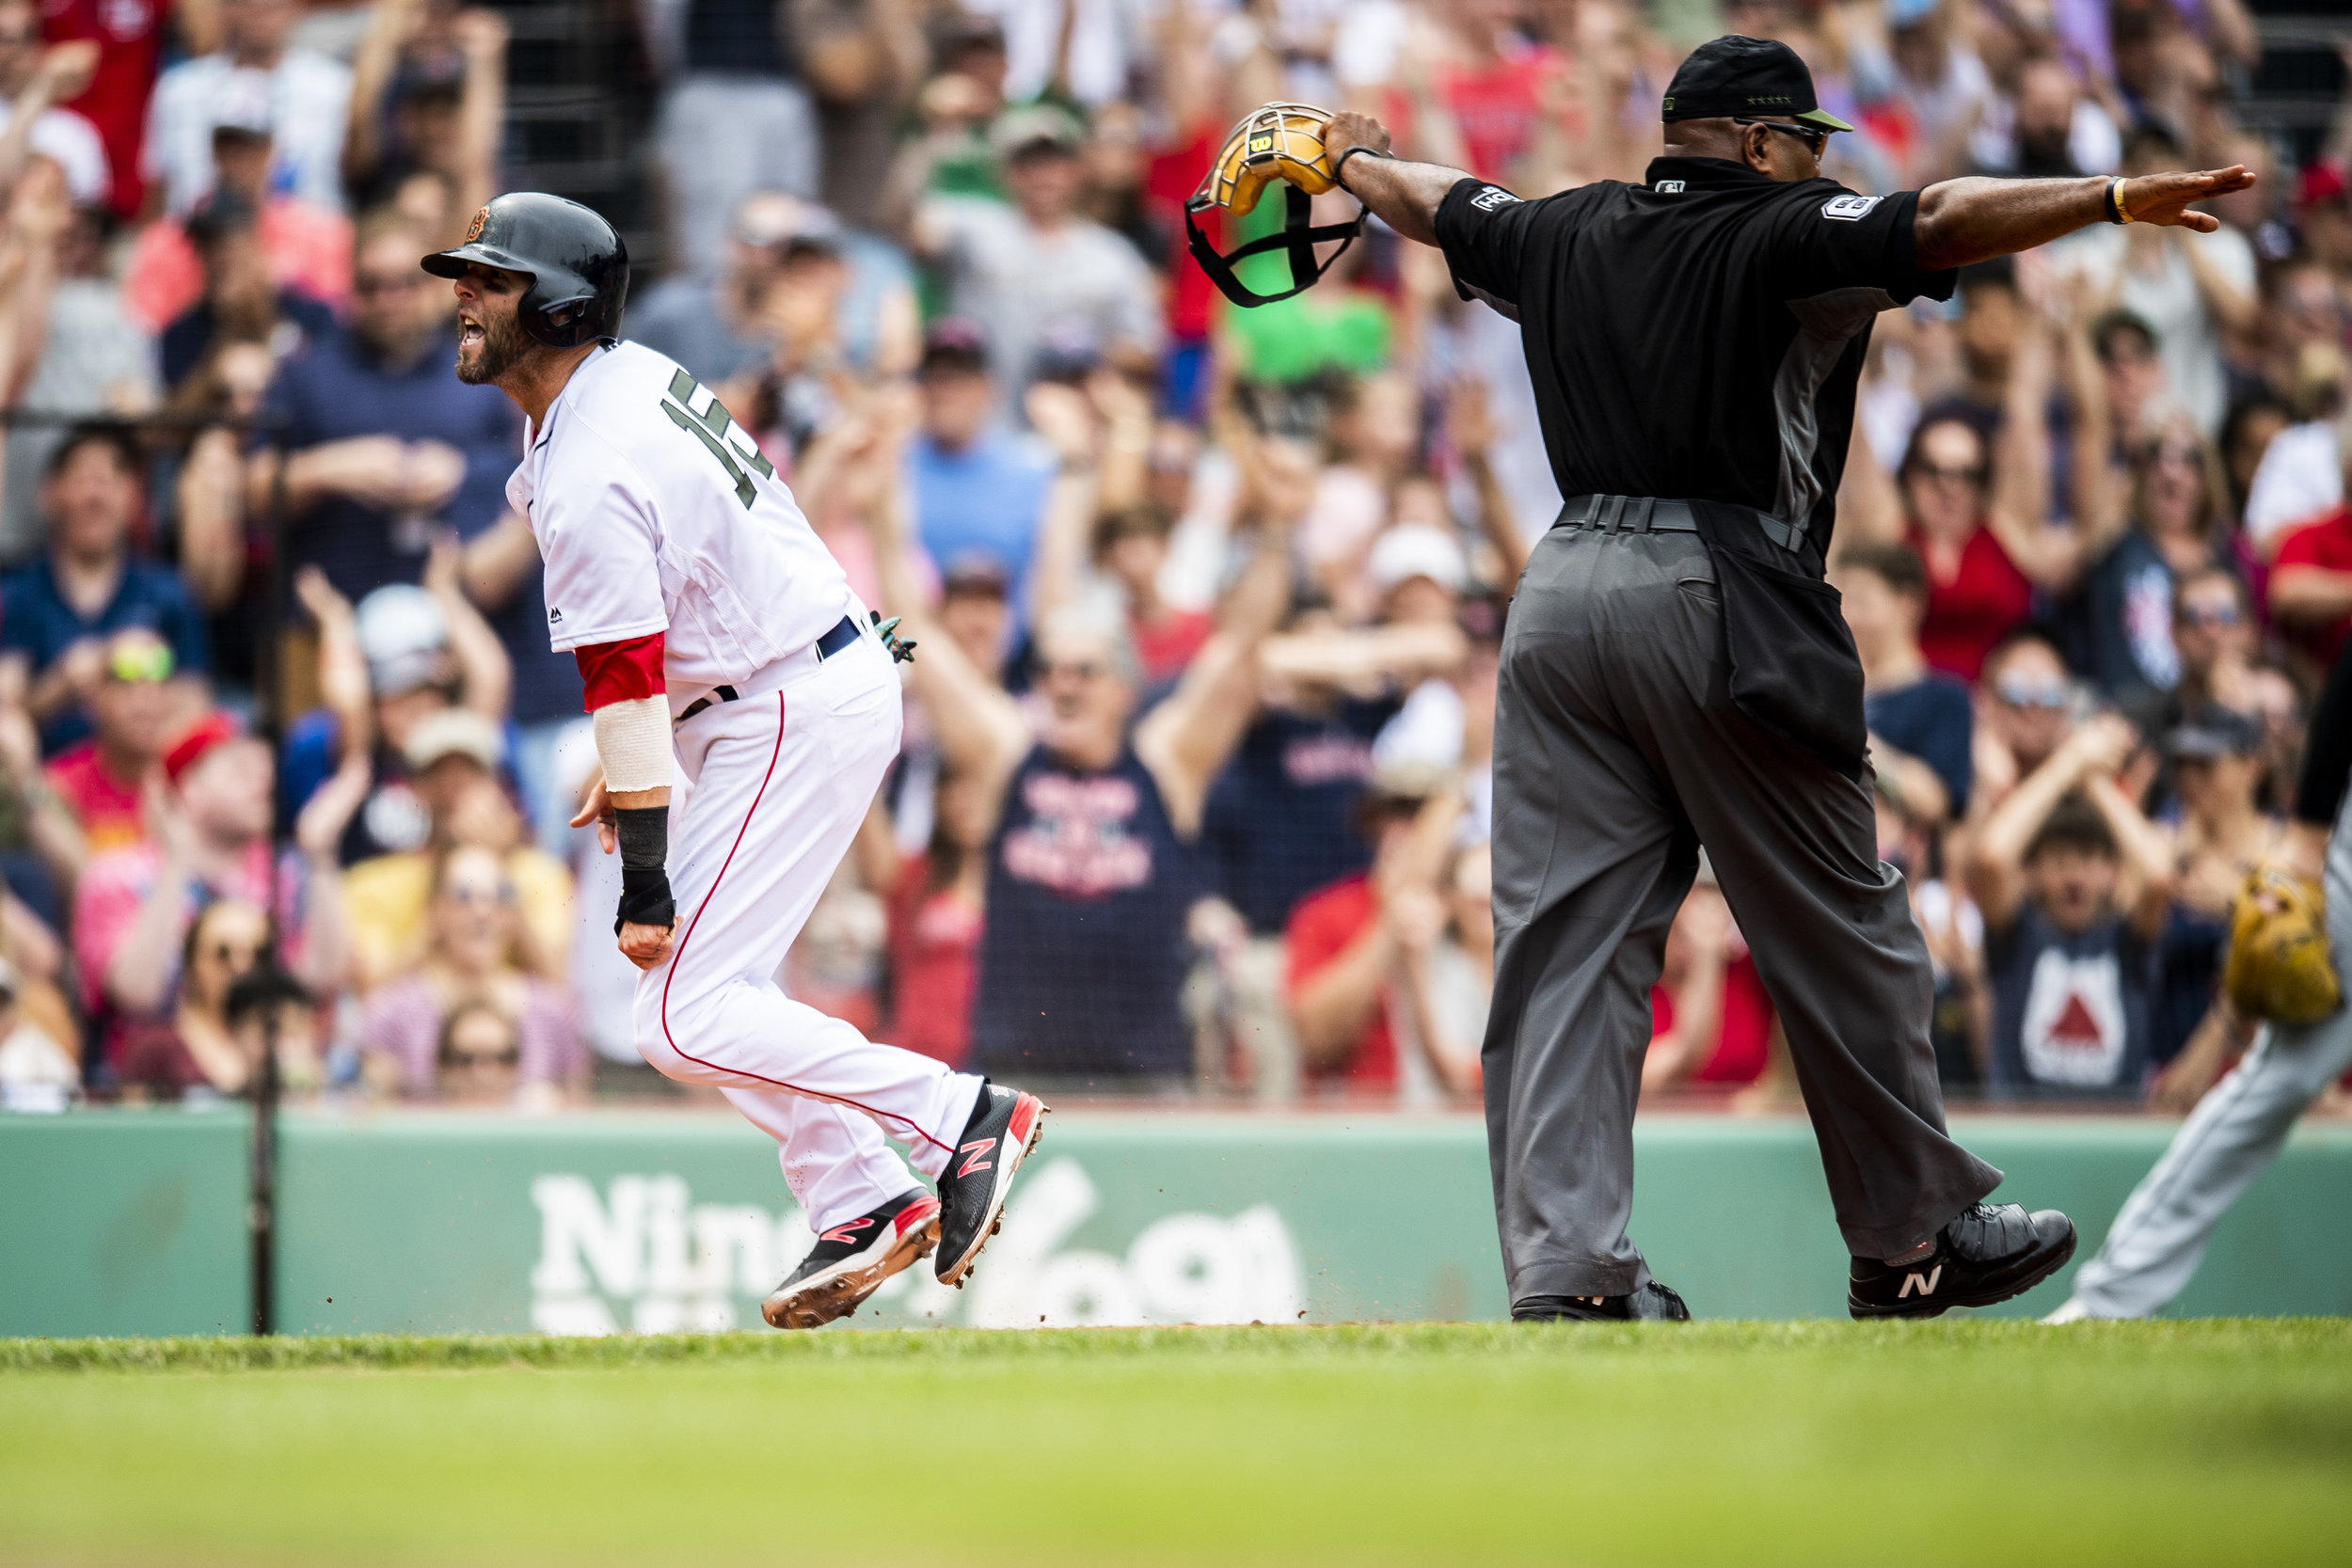 May 26, 2018, Boston, MA: Boston Red Sox second basemen Dustin Pedroia safely scores as the Boston Red Sox face the Atlanta Braves at Fenway Park in Boston, Massachusetts on Saturday, May 26, 2018. (Photo by Matthew Thomas/Boston Red Sox)